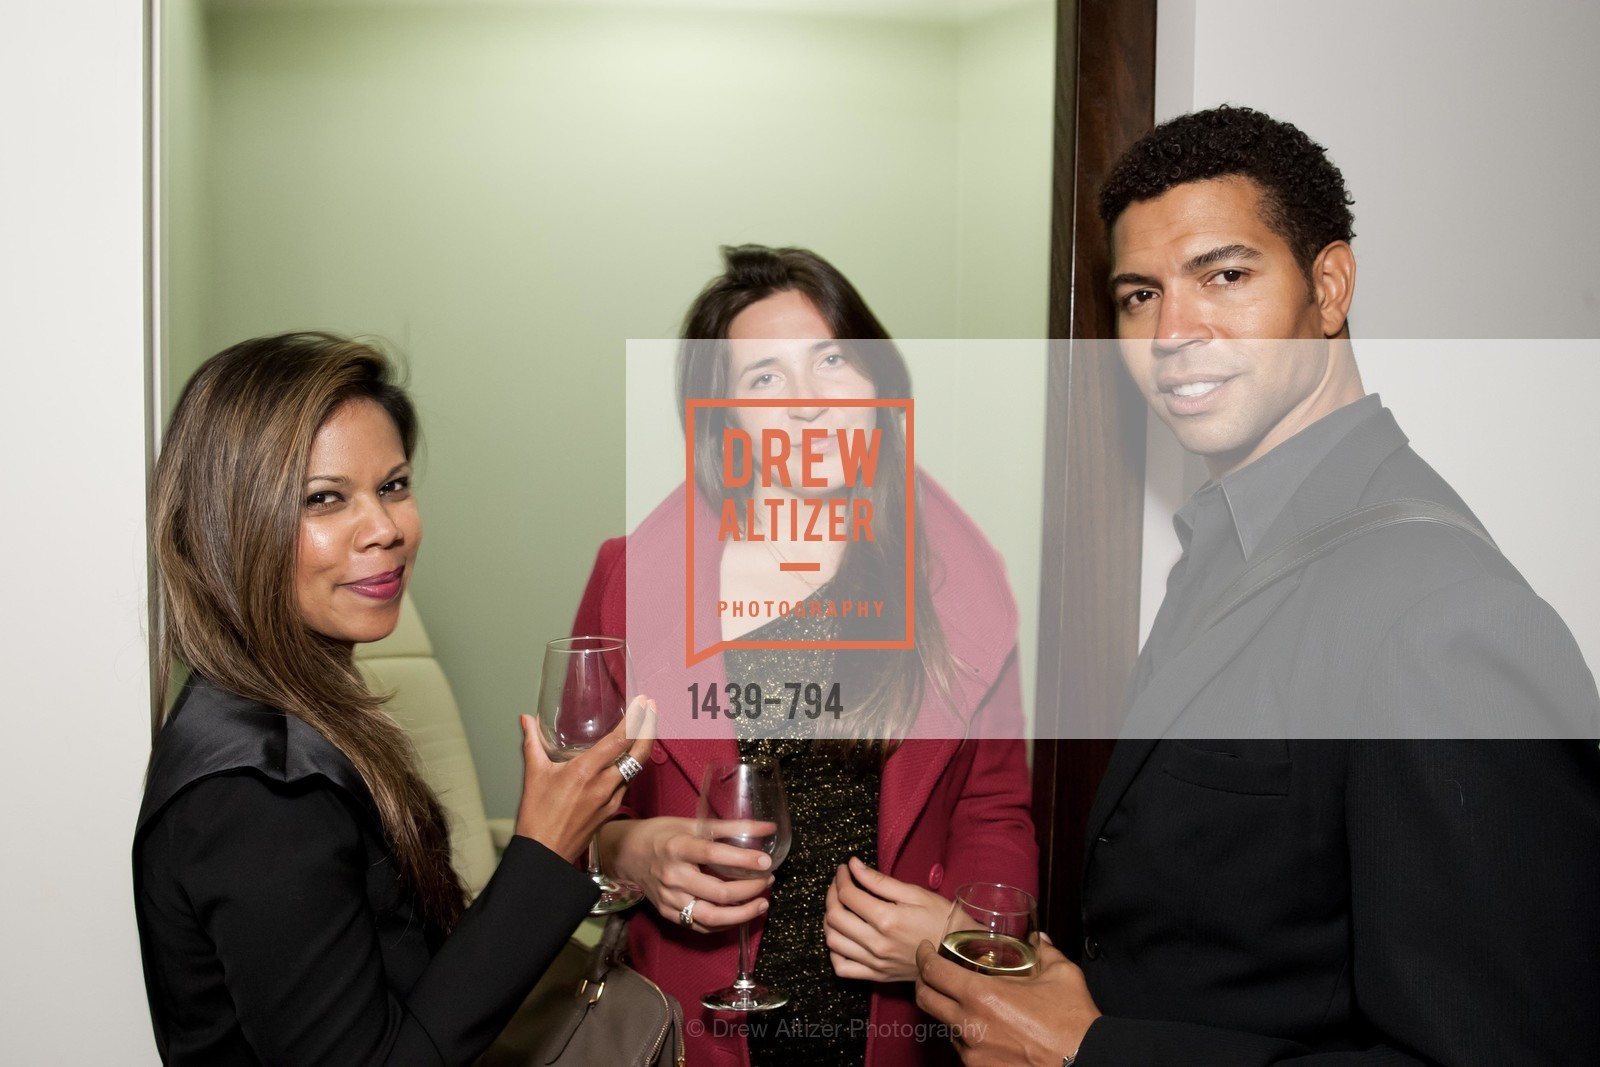 Valerie Demicheva, Gian-Paul Williams, Nishika DeRosario, EPI CENTER MedSpa Anniversary and Launch of REPLETE - Evening Celebration, US, April 22nd, 2015